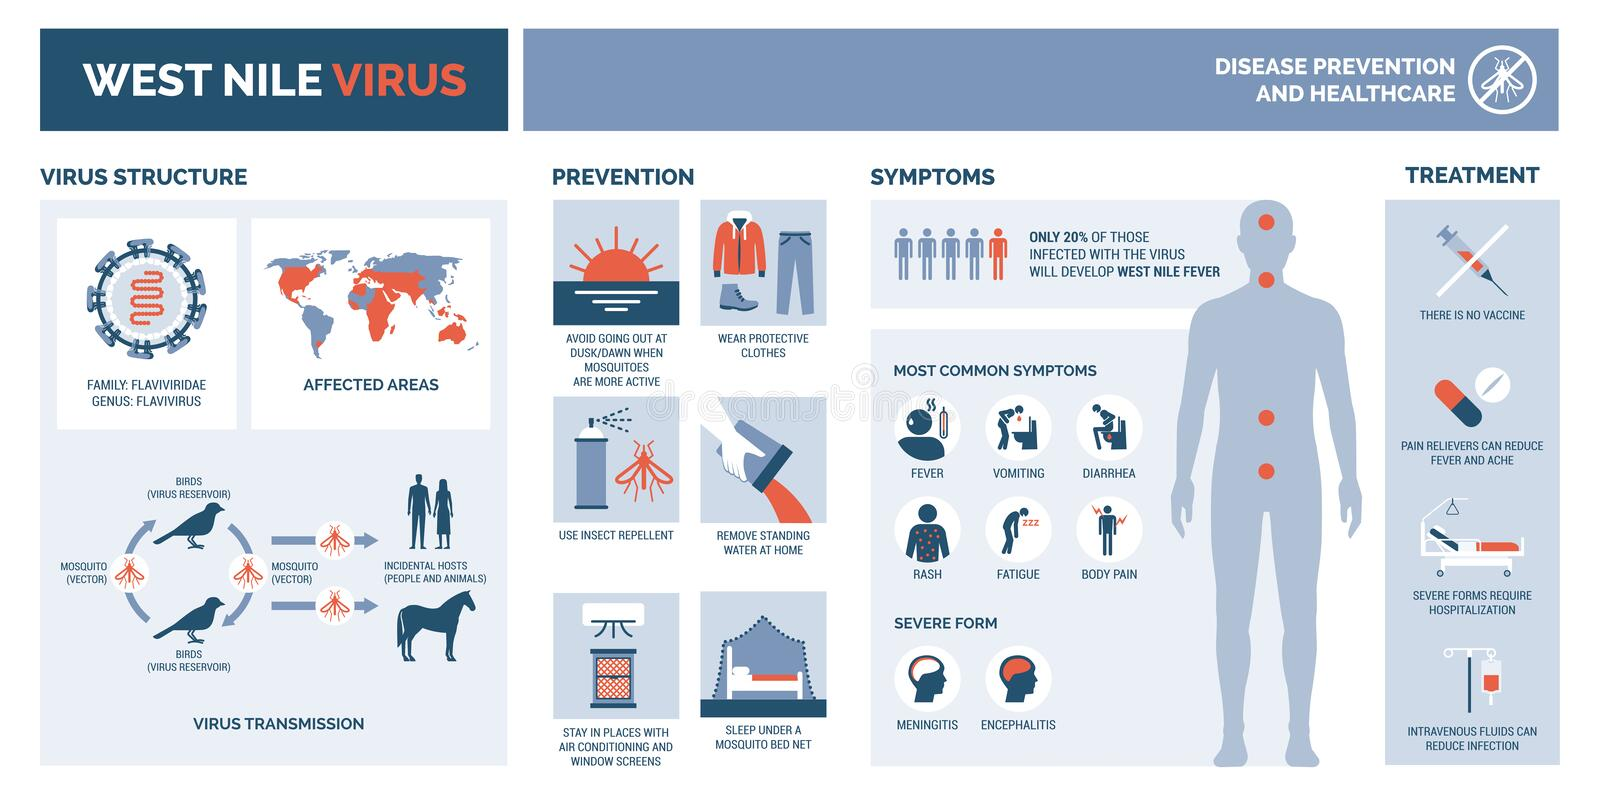 West nile virus infographic. Virus structure, transmission, prevention, symptims and treatment vector illustration